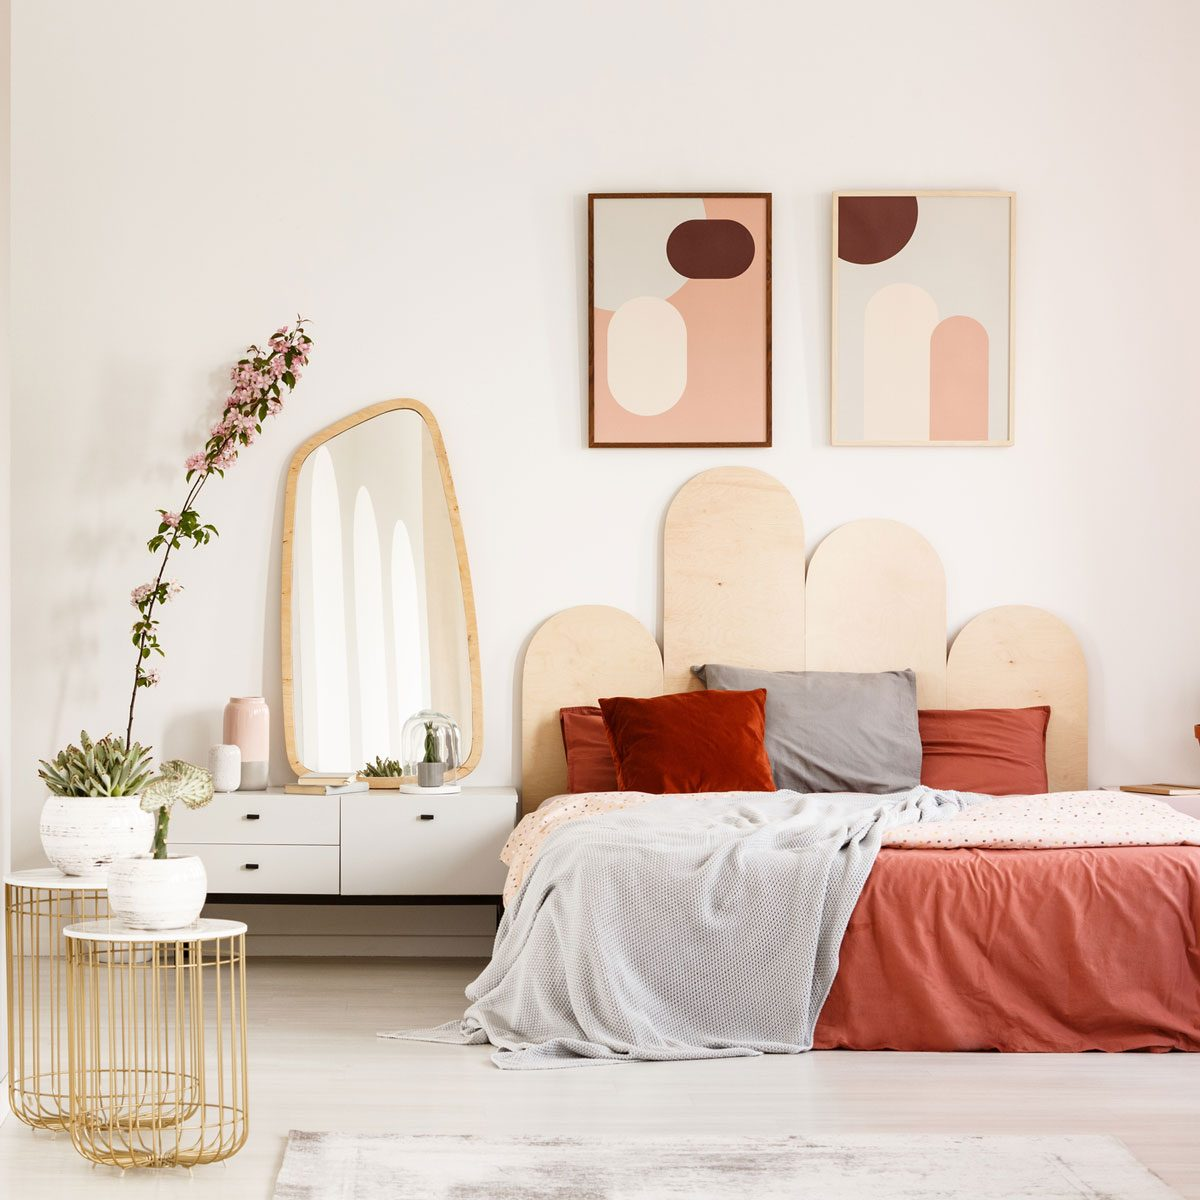 Bedroom with desert-inspired colors